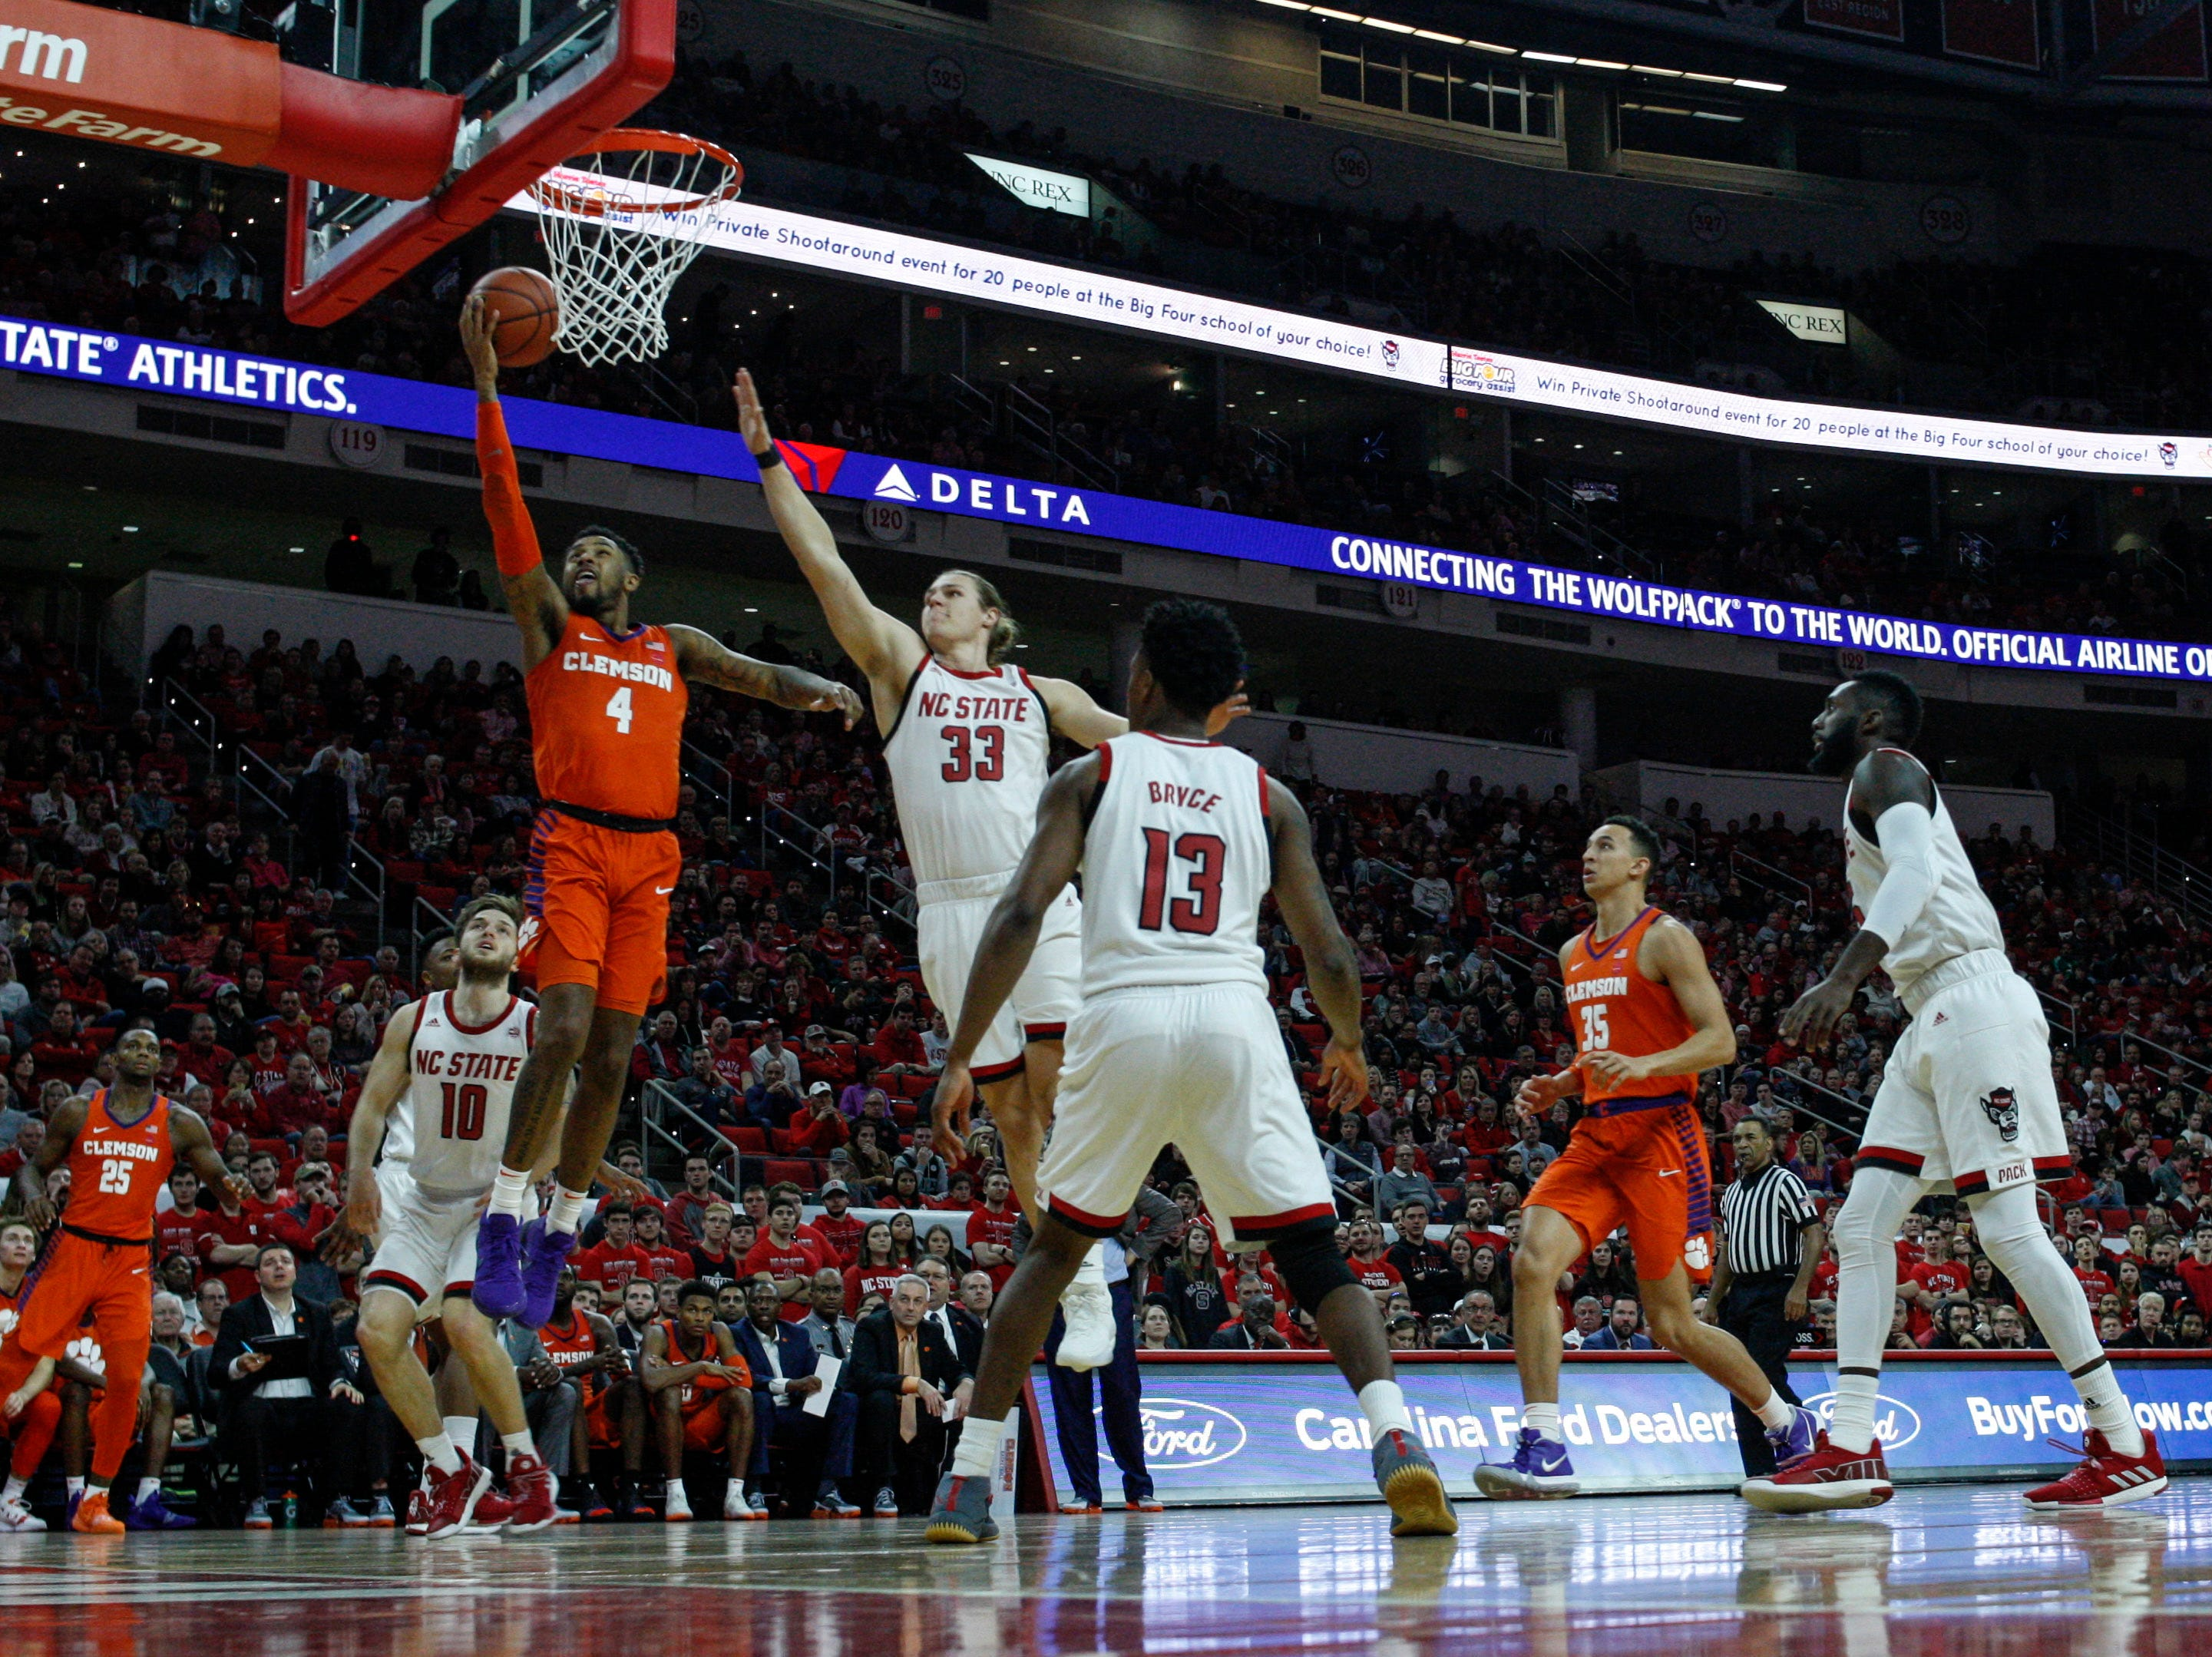 Jan 26, 2019; Raleigh, NC, USA; Clemson Tigers guard Shelton Mitchell (4) drives to the basket against North Carolina State Wolfpack forward Wyatt Walker (33) in the second half at PNC Arena. North Carolina State Wolfpack won 69-67. Mandatory Credit: Nell Redmond-USA TODAY Sports